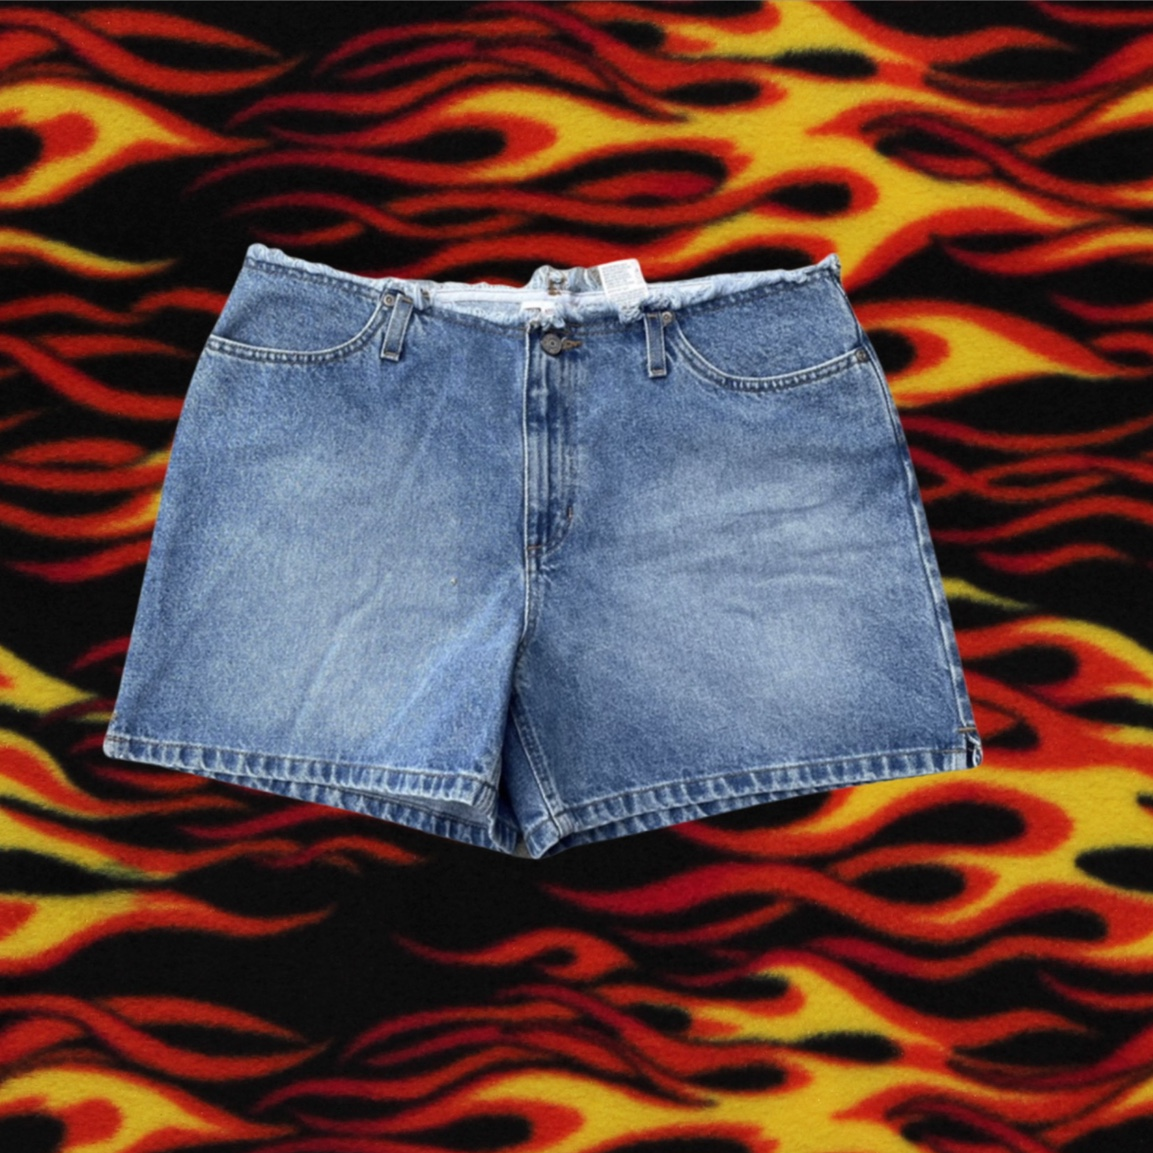 Product Image 1 - Vintage faded glory jean shorts!